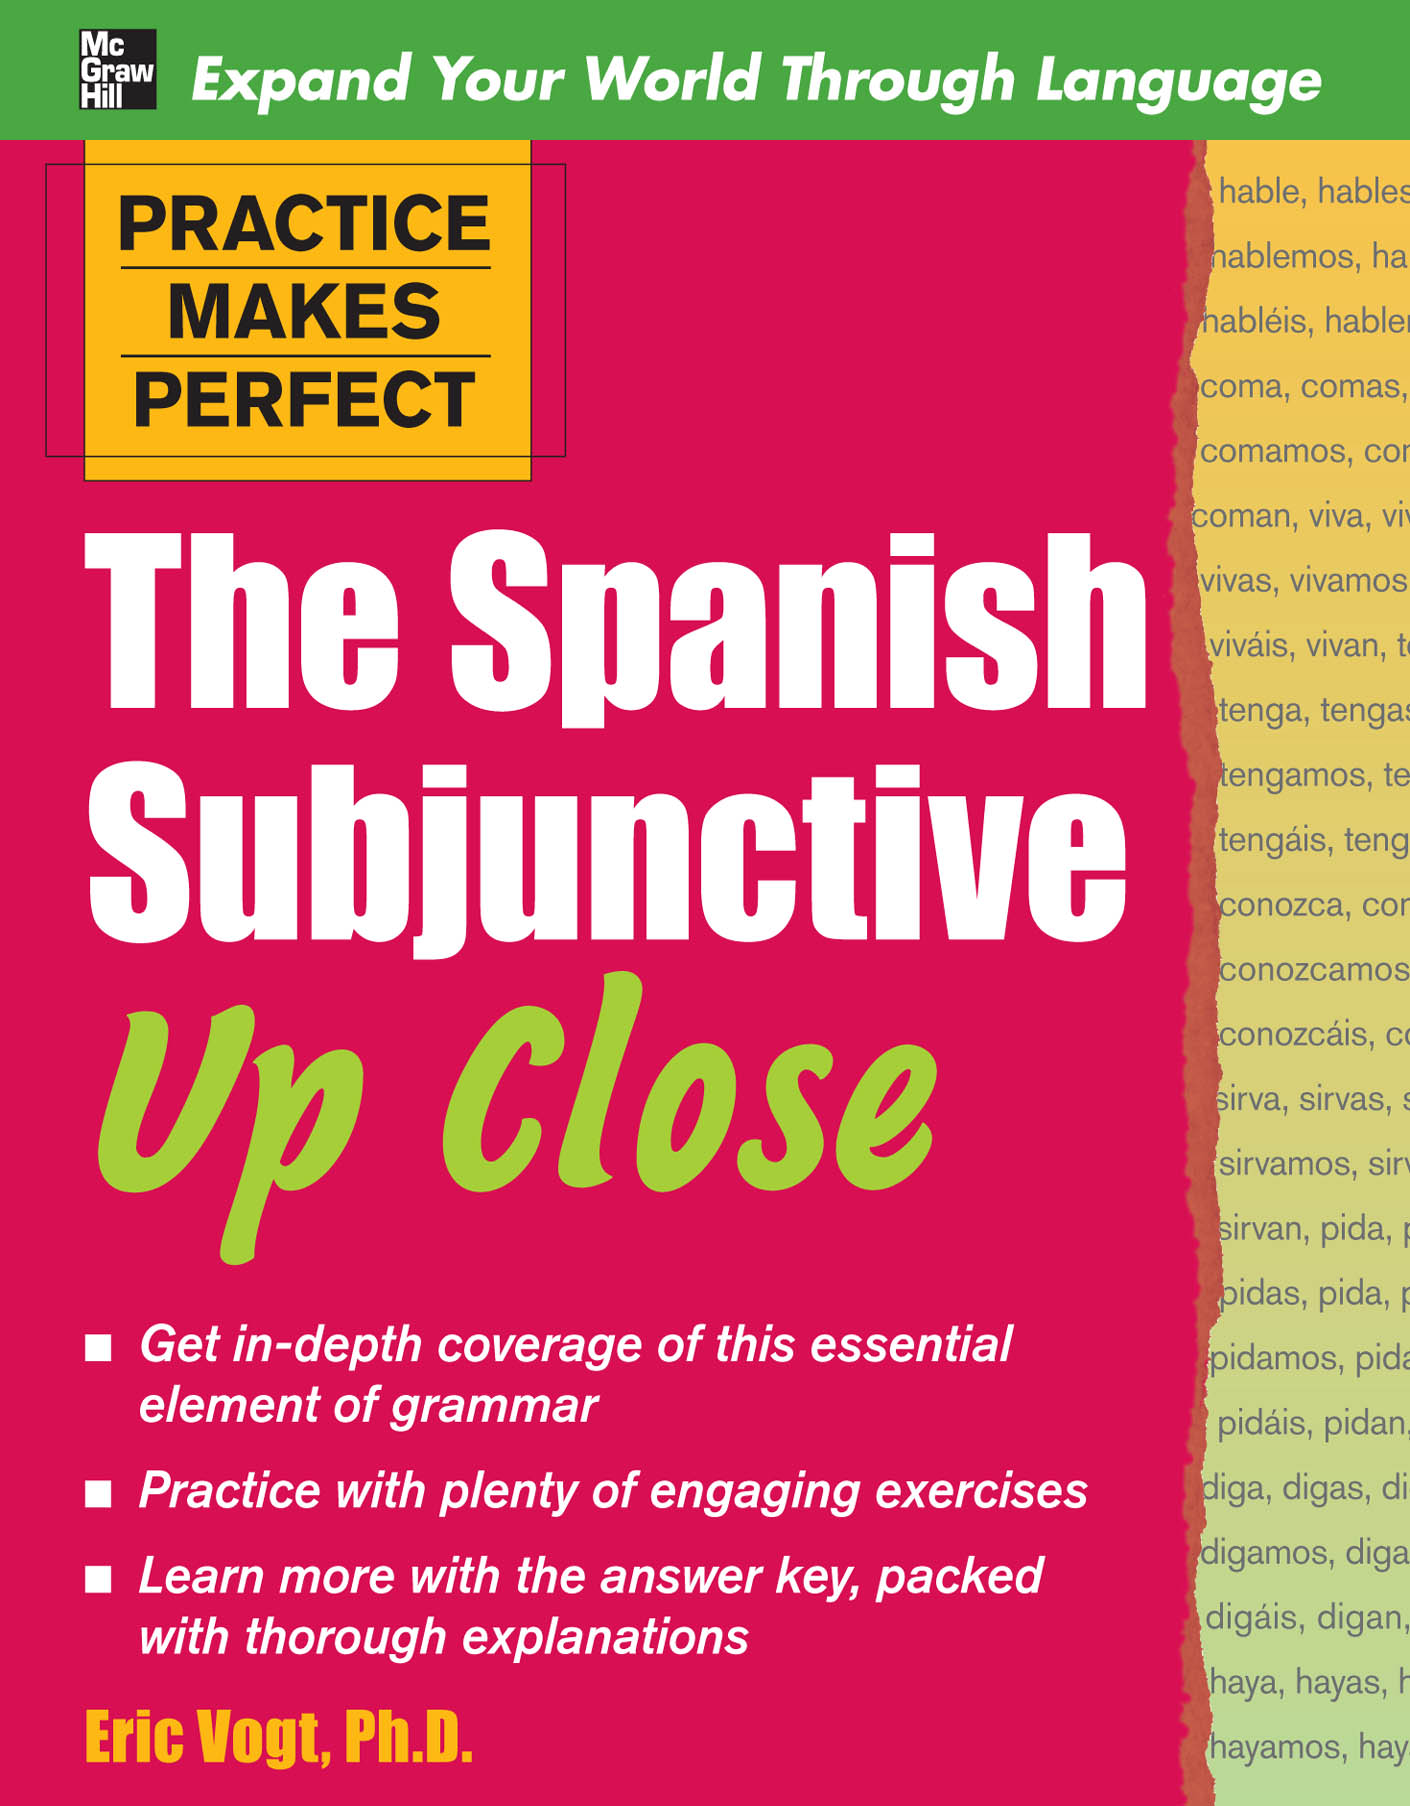 a2 spanish essay phrases · hello s4 please see the link below for some nice phrases to put into your job application essay for the national 5 prelim essay phrases good luck.